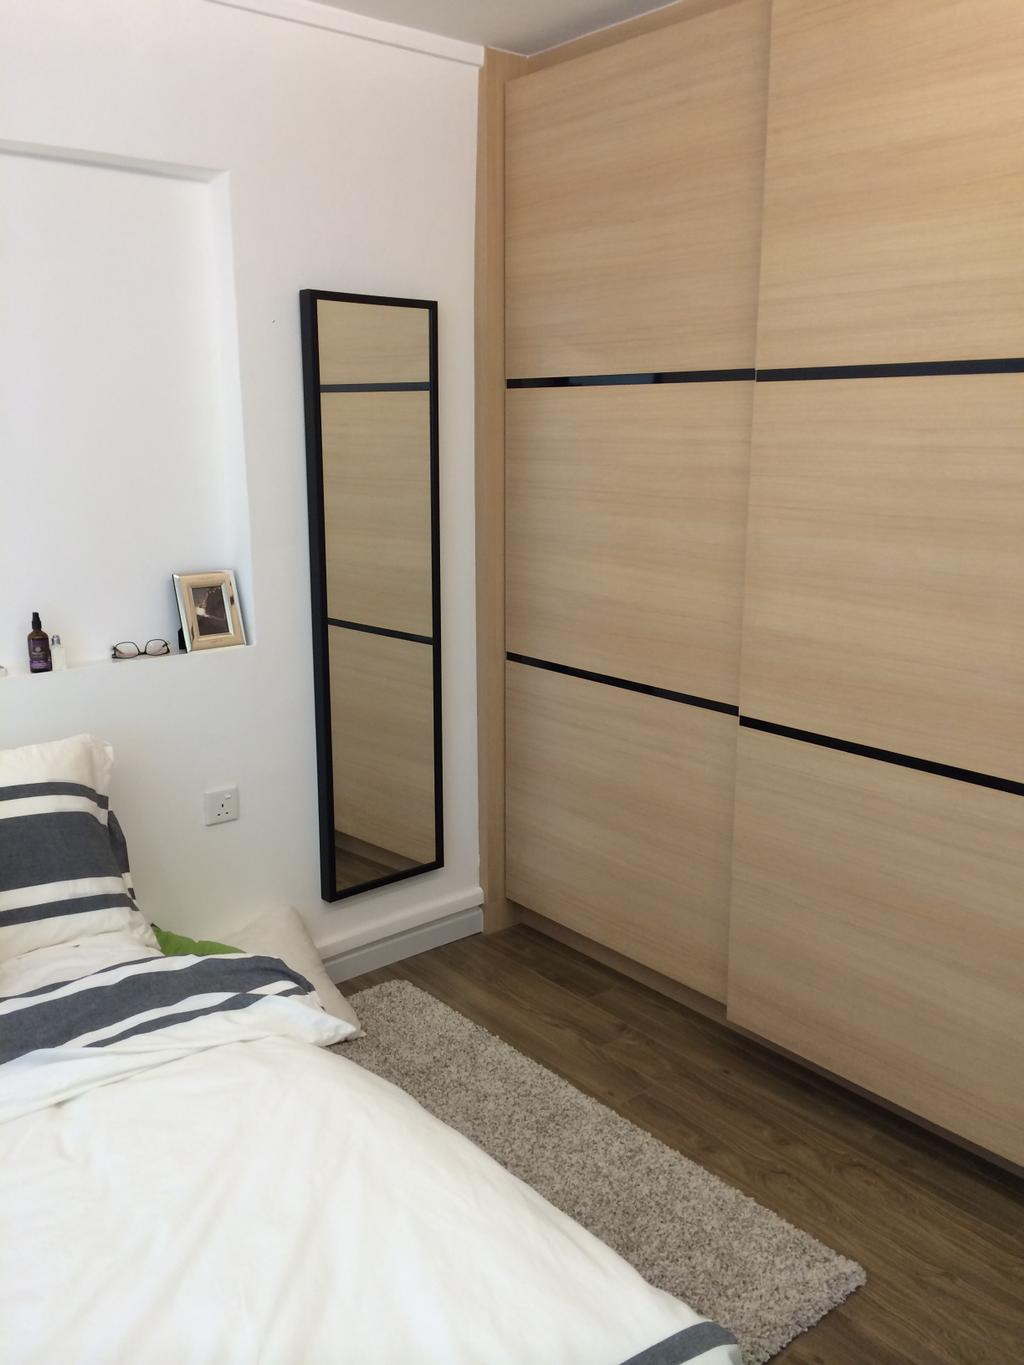 Scandinavian, HDB, Bedroom, Serangoon, Interior Designer, Juz Interior, Cupboard, Wardrobe, Wood, Laminate, Mirror, Headboard, Wall, Rug, Carpet, Monochrome, Neutral, Indoors, Interior Design, Room, Bed, Furniture